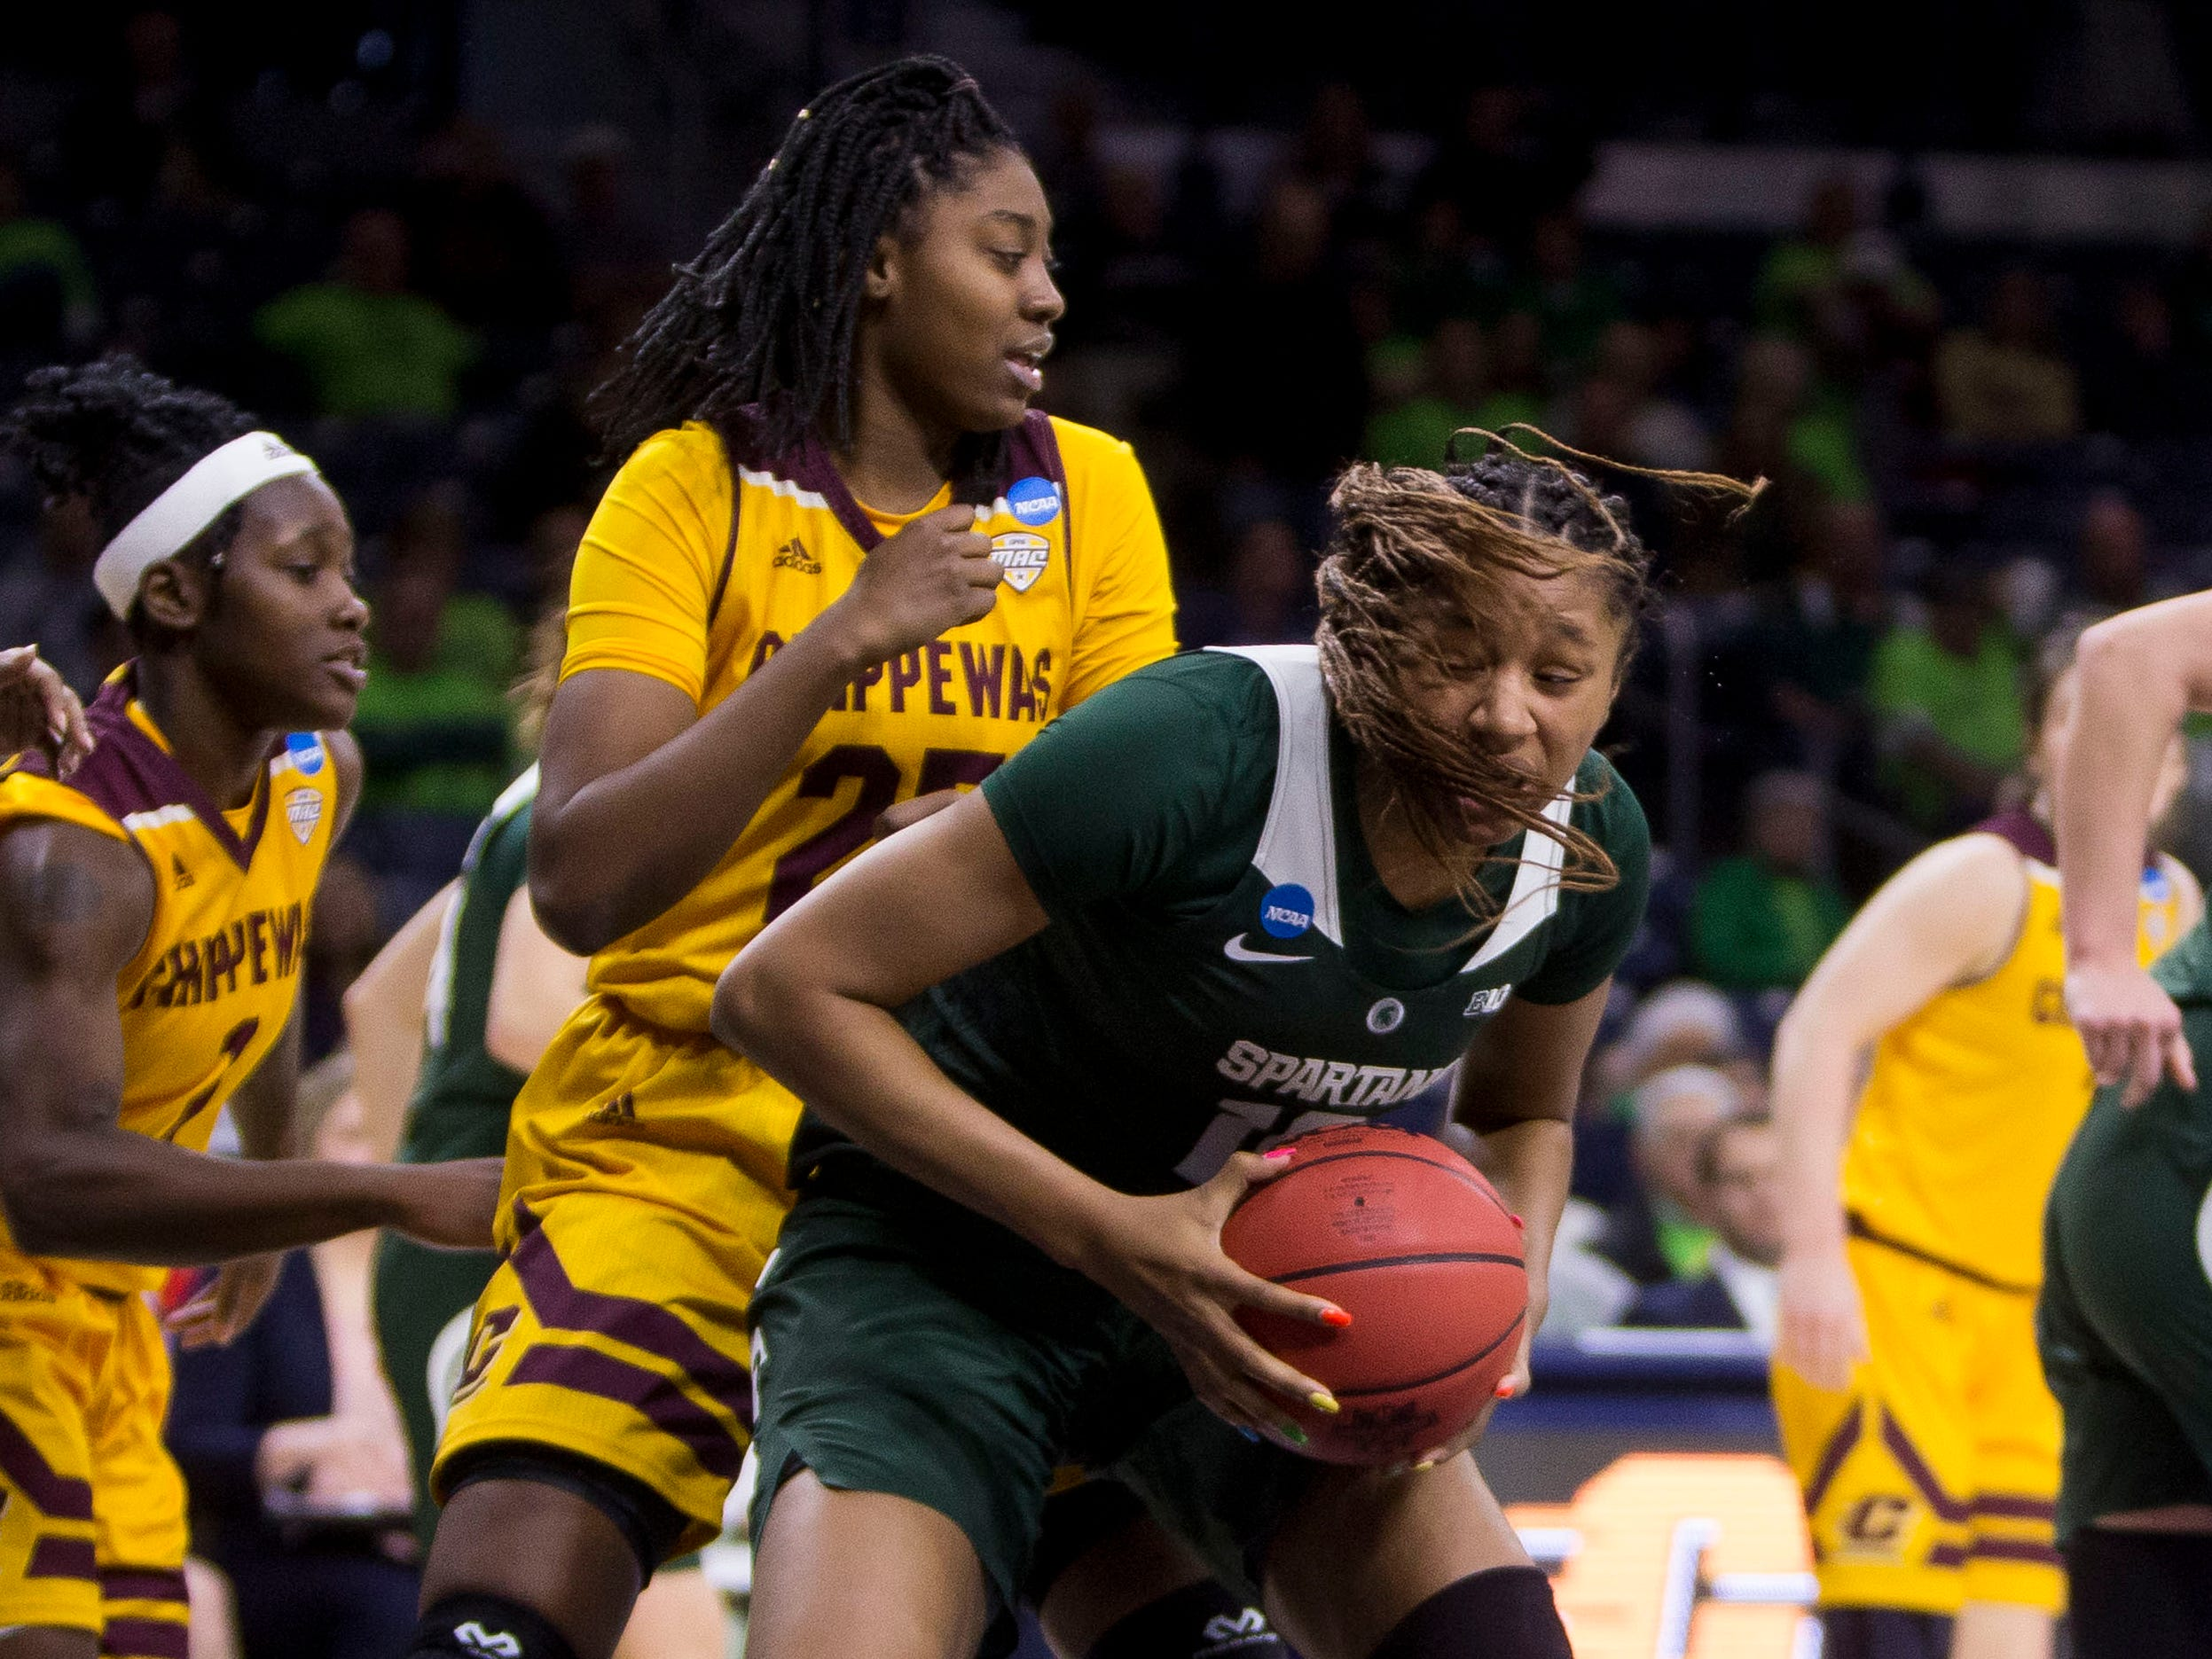 Michigan State's Sidney Cooks, front, grabs a rebound in front of Central Michigan's Jahari Smith (25) during a first-round game in the NCAA women's college basketball tournament in South Bend, Ind., Saturday, March 23, 2019. Michigan State won 88-87.